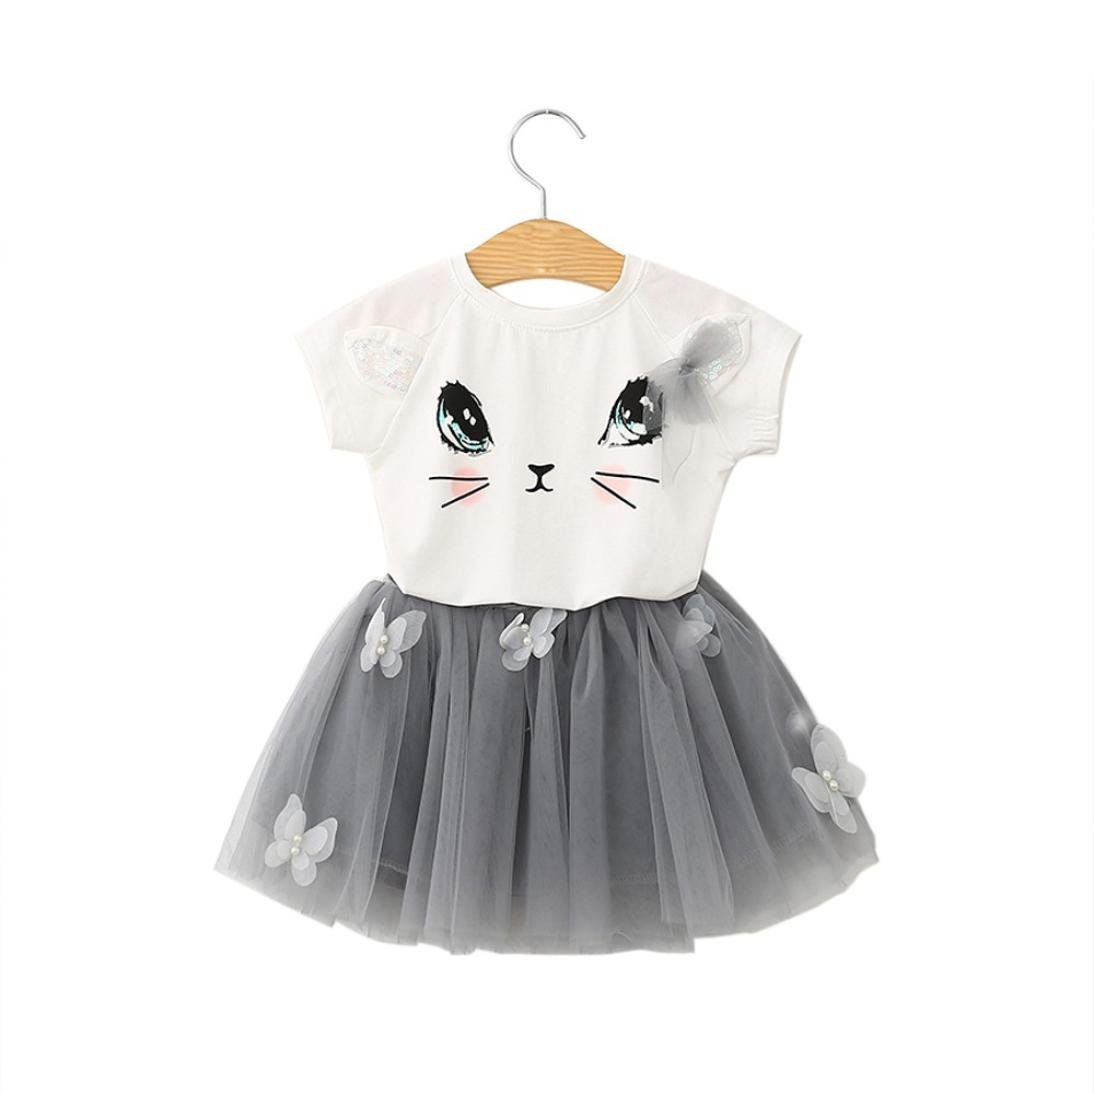 Lurryly 2Pcs Baby Girls Cat Shirt+Butterfly Tutu Skirt Summer Clothes Clothing Outfit